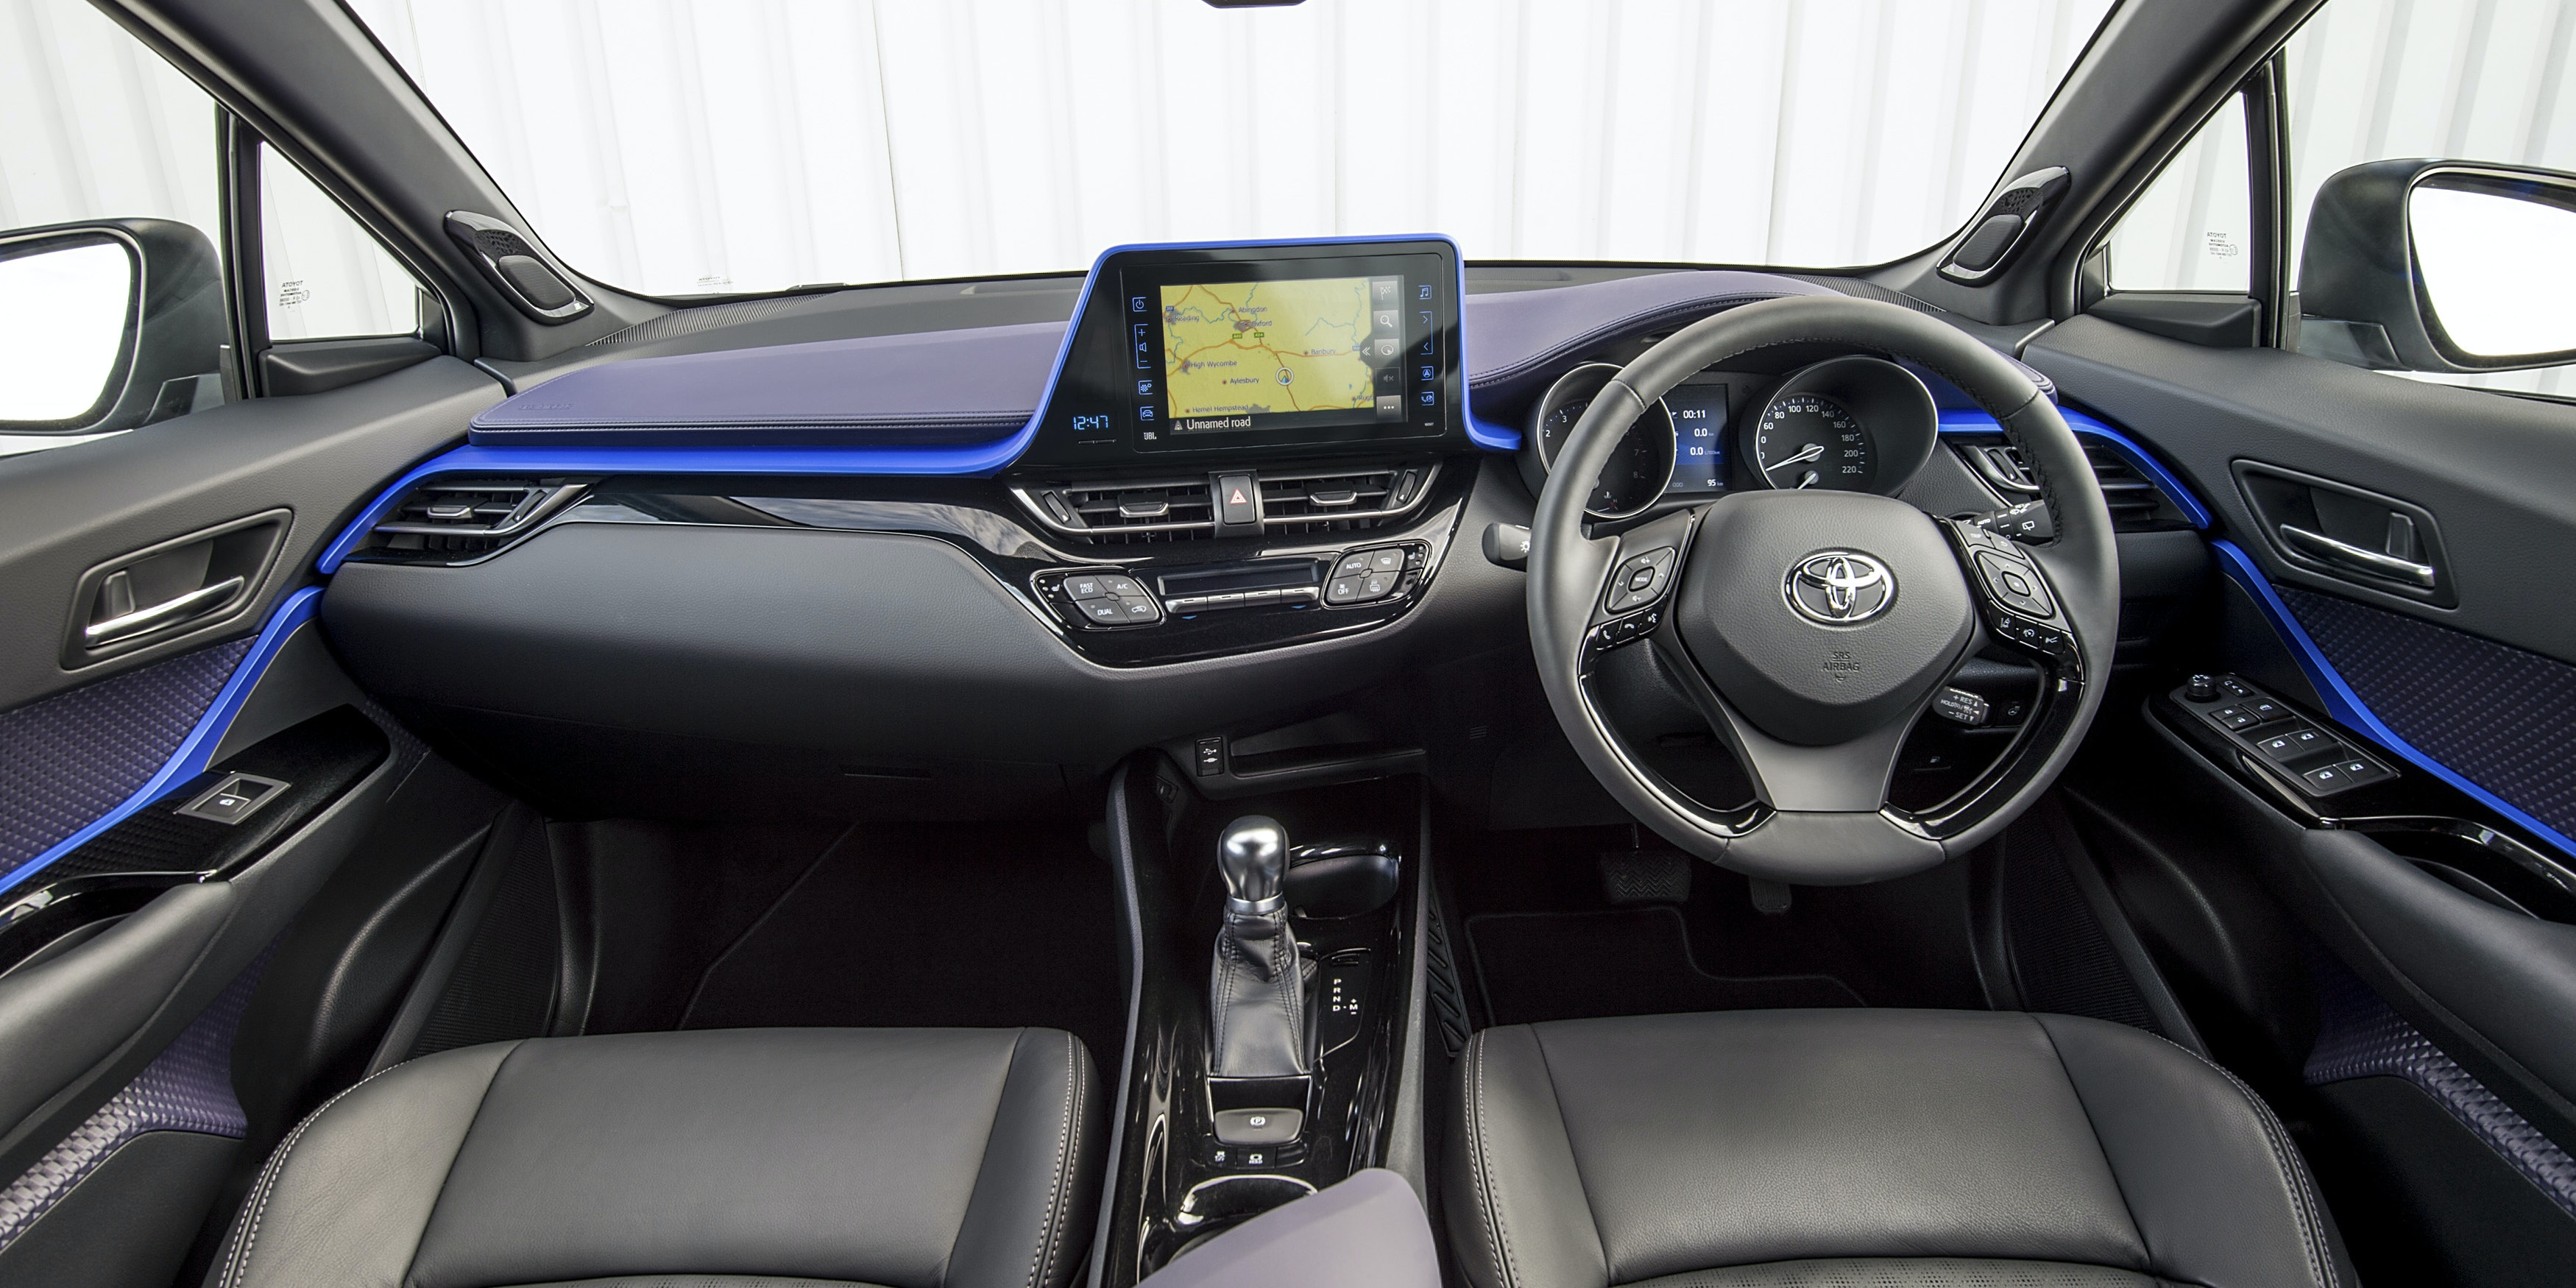 Toyota Greenville Sc >> Why You Should Skip The Toyota Prius For The Prius Prime | Autos Post